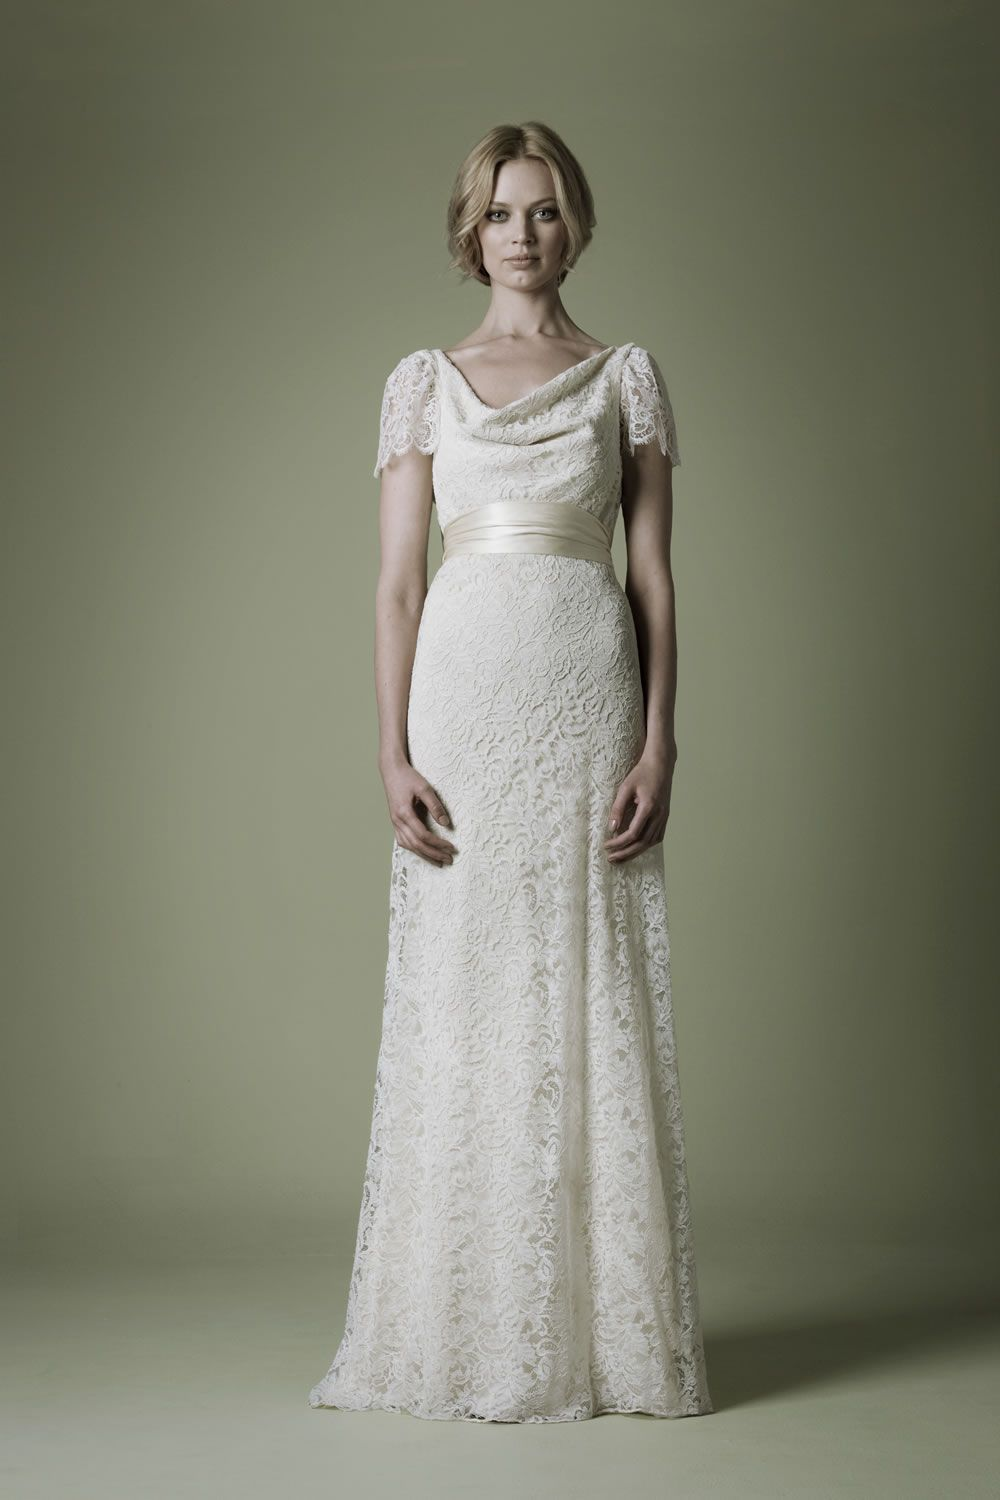 1940s Style Wedding Dress With Dark Ivory Corded Lace Cowl Front And Back